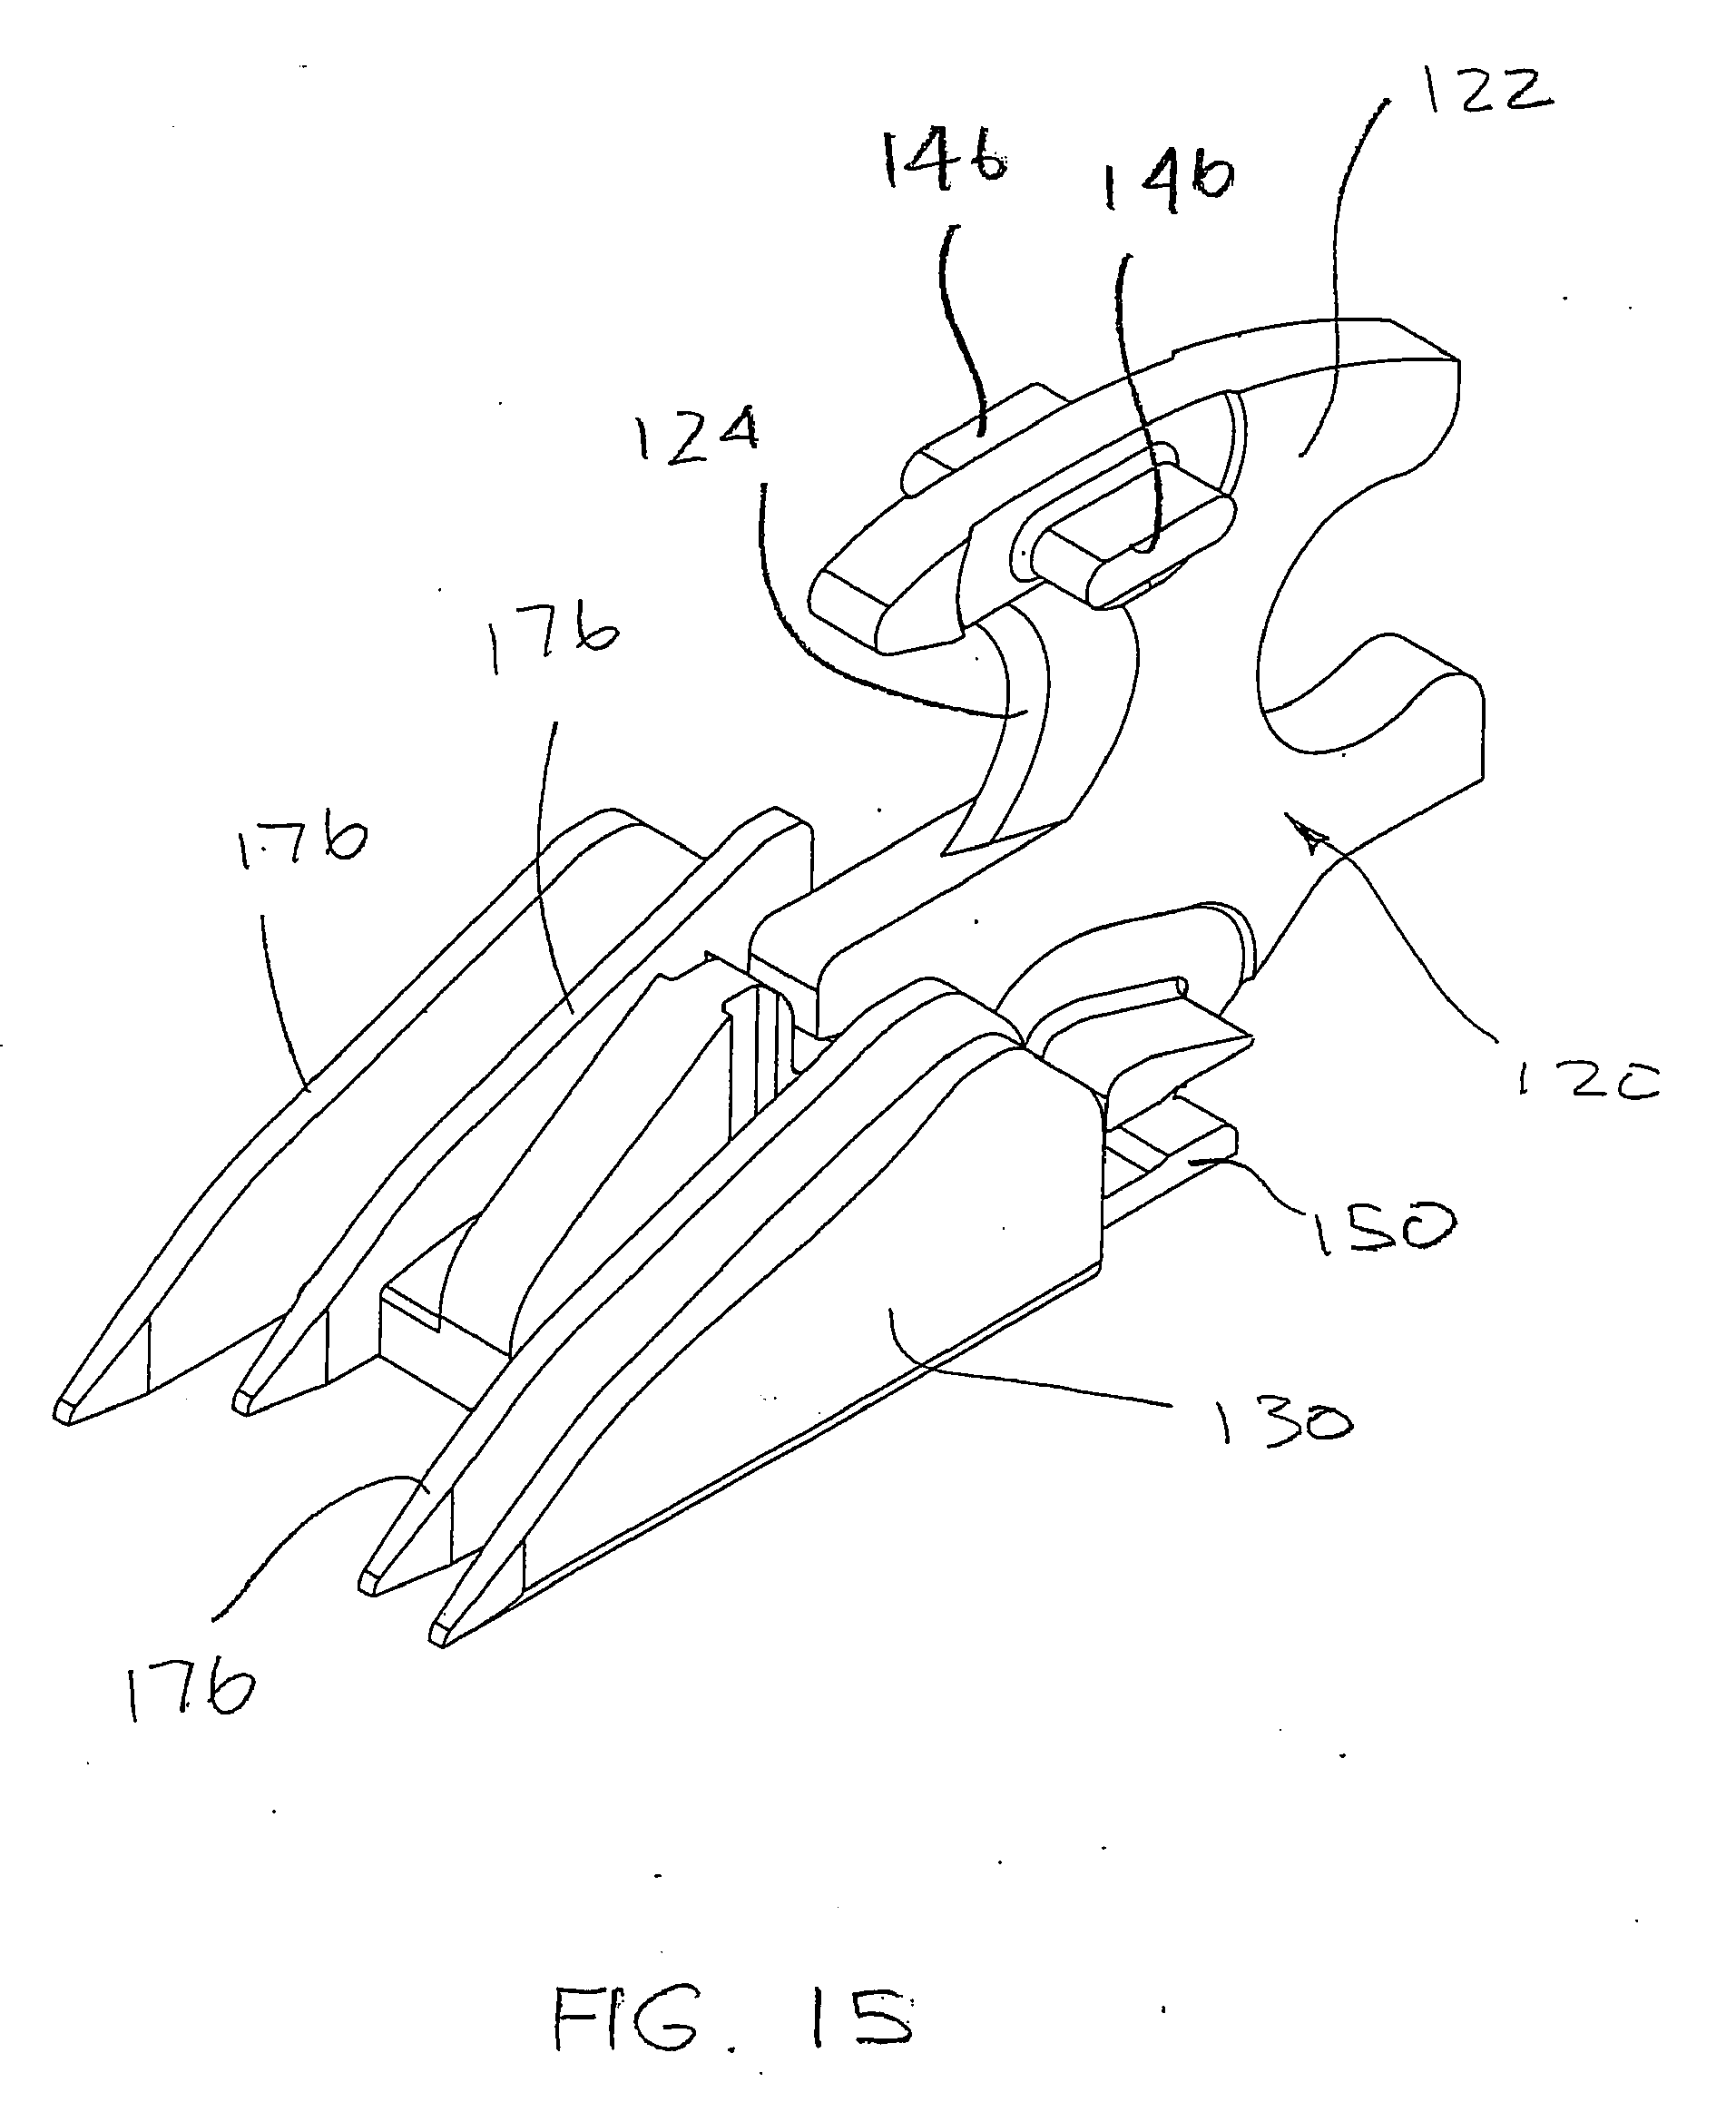 EP2974674A1 - Surgical stapling device with a curved end